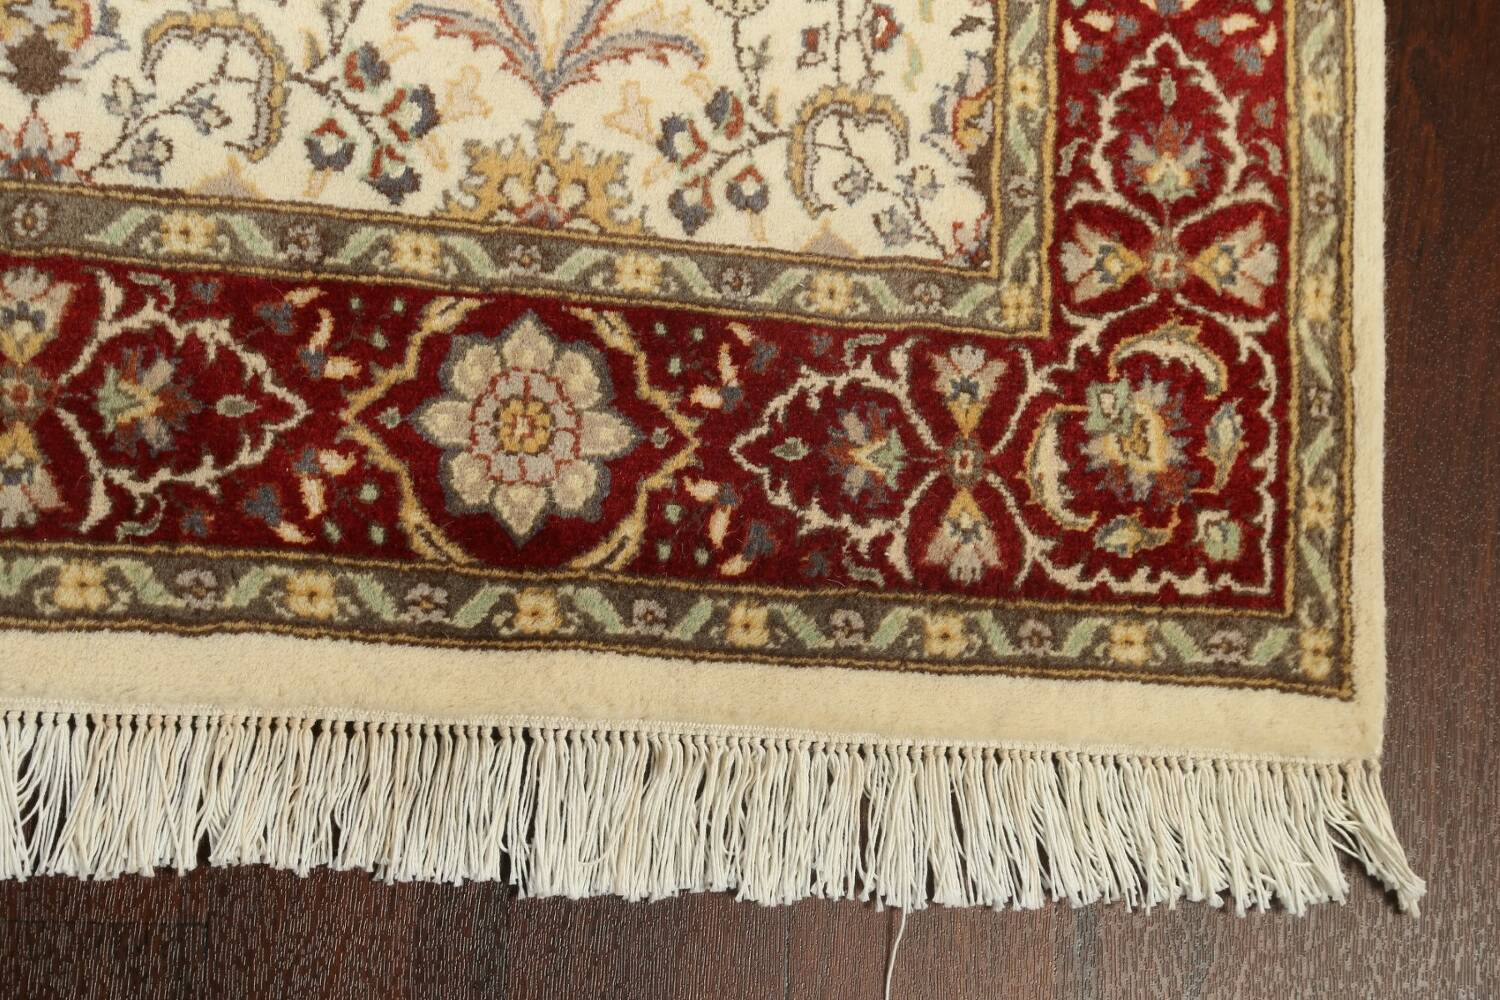 100% Vegetable Dye Floral Tabriz Oriental Area Rug 4x6 image 6